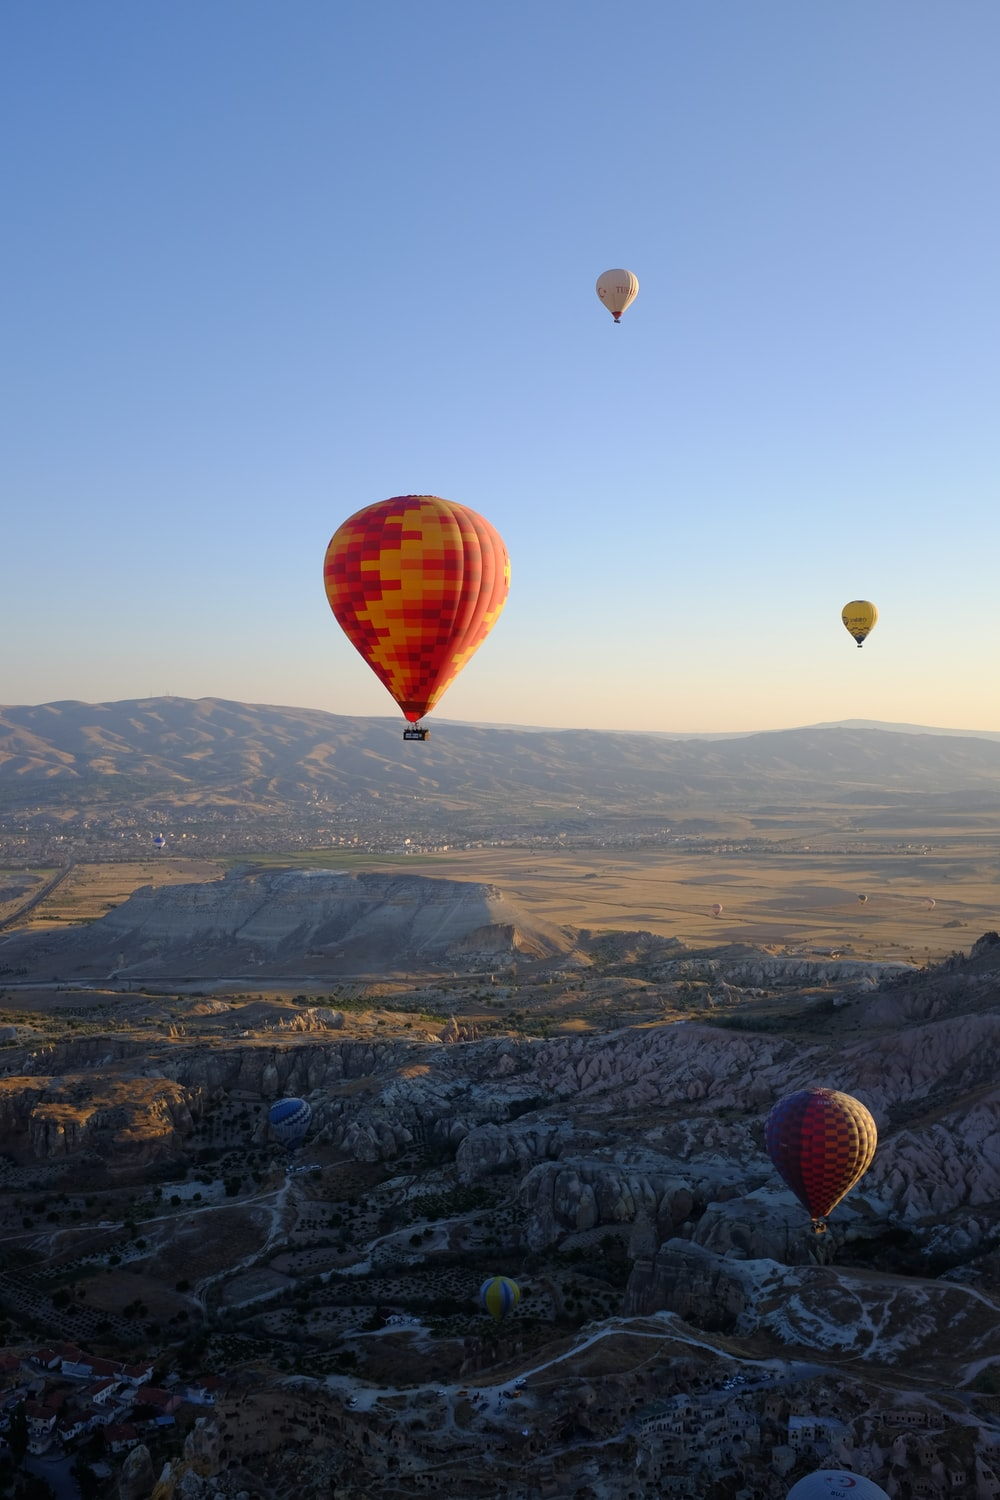 hot air balloons flying over the mountains during daytime